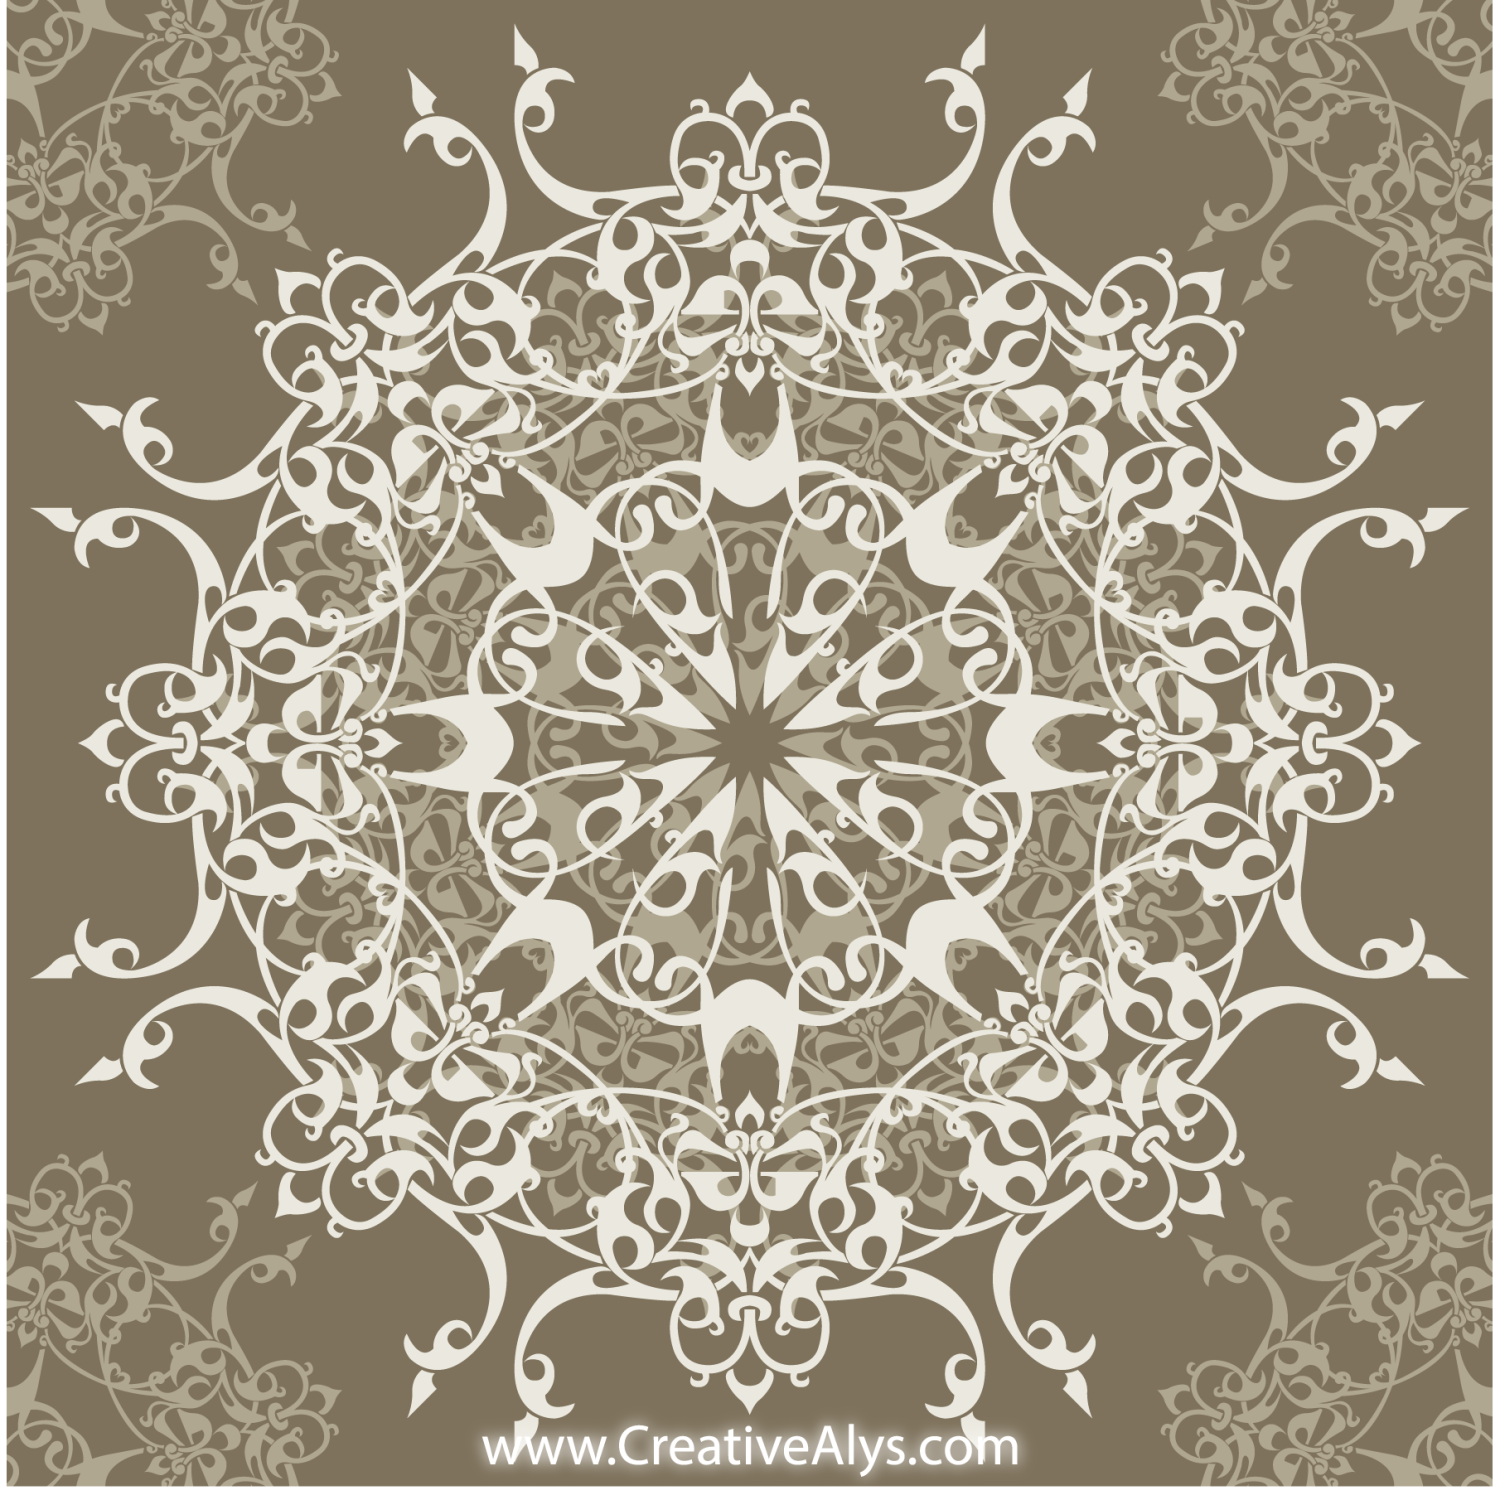 vector for free use classy seamless pattern design